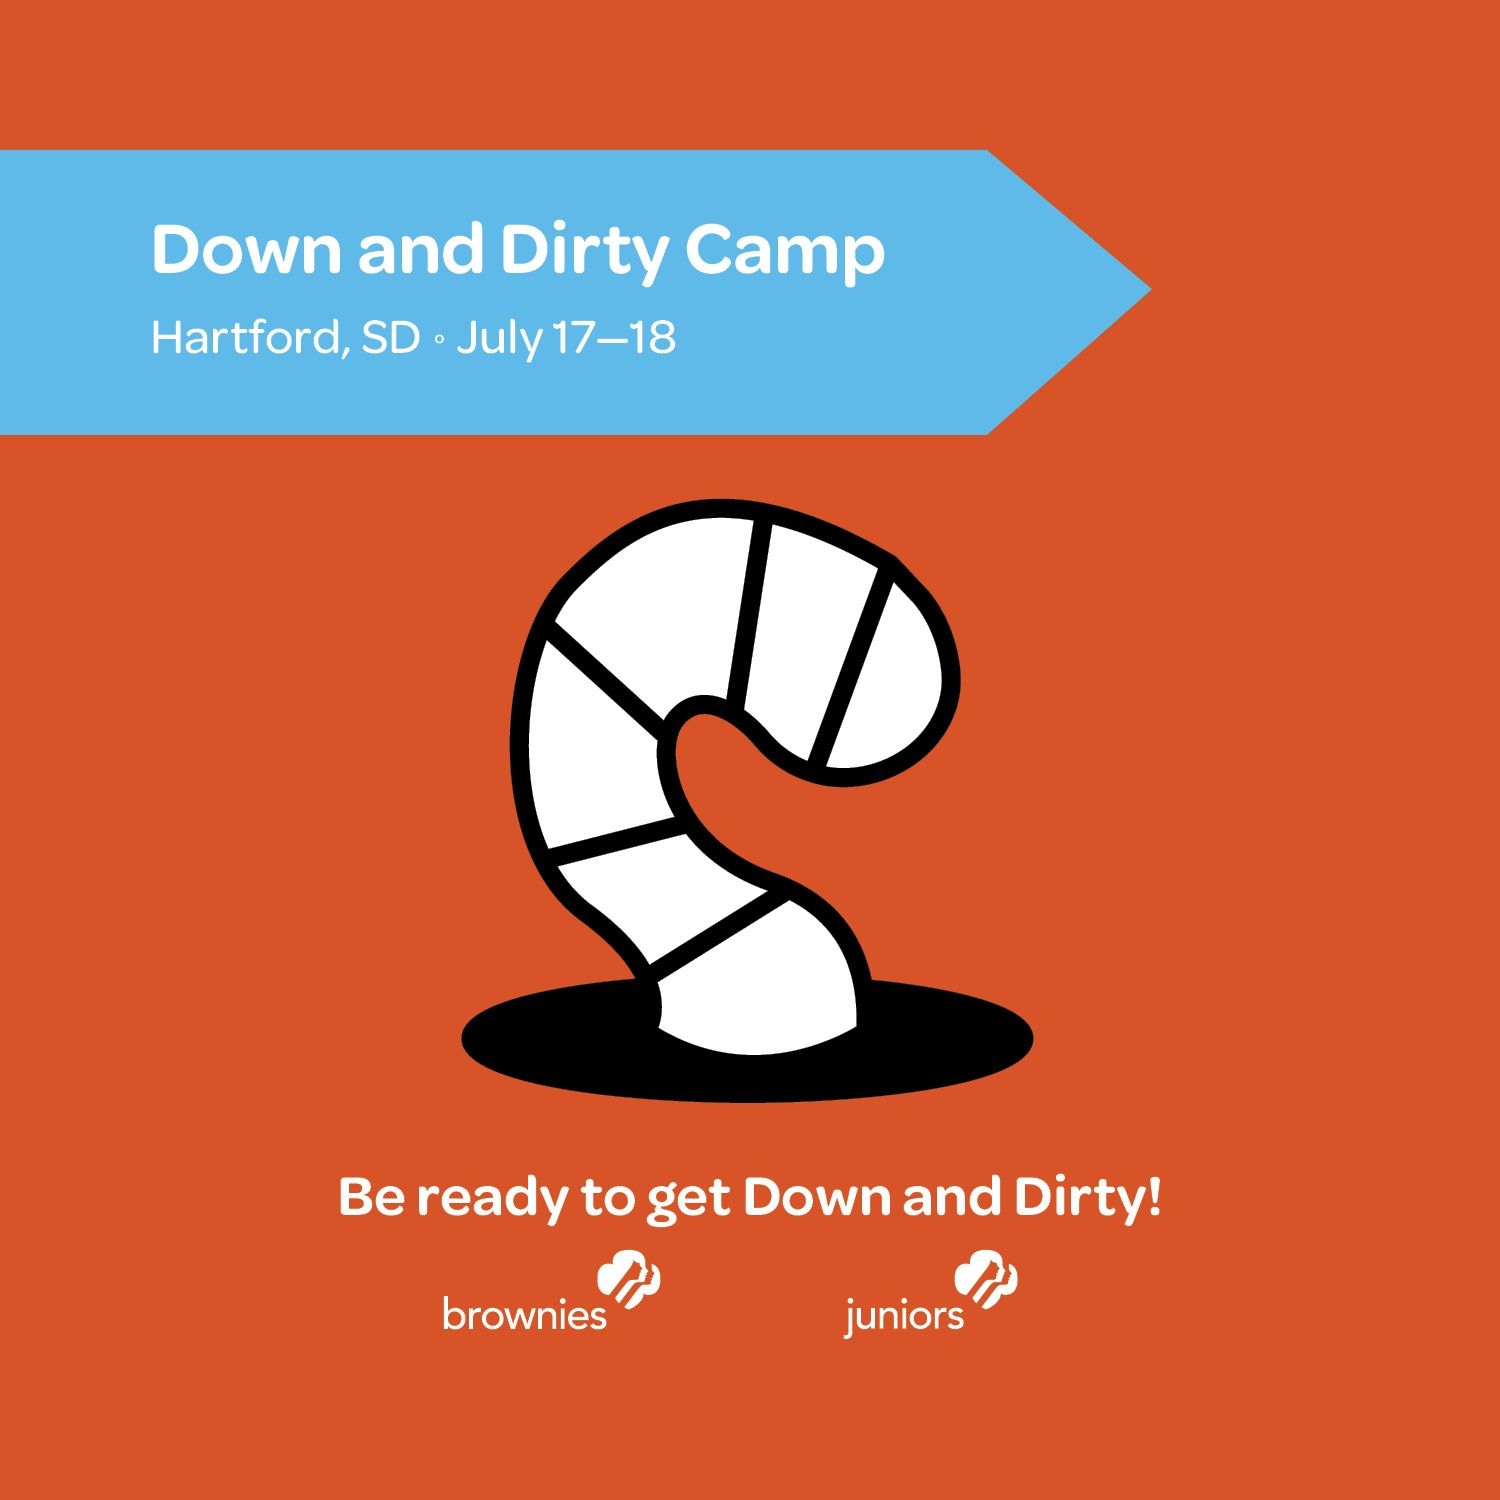 Got Dirt? We Do! Be ready to get dirty when you come to this camp. There will be flower bombs, composting, mud sculpture and maybe an earthworm race or two, but don't worry, you can wash all the dirt away with a swim in the lake.